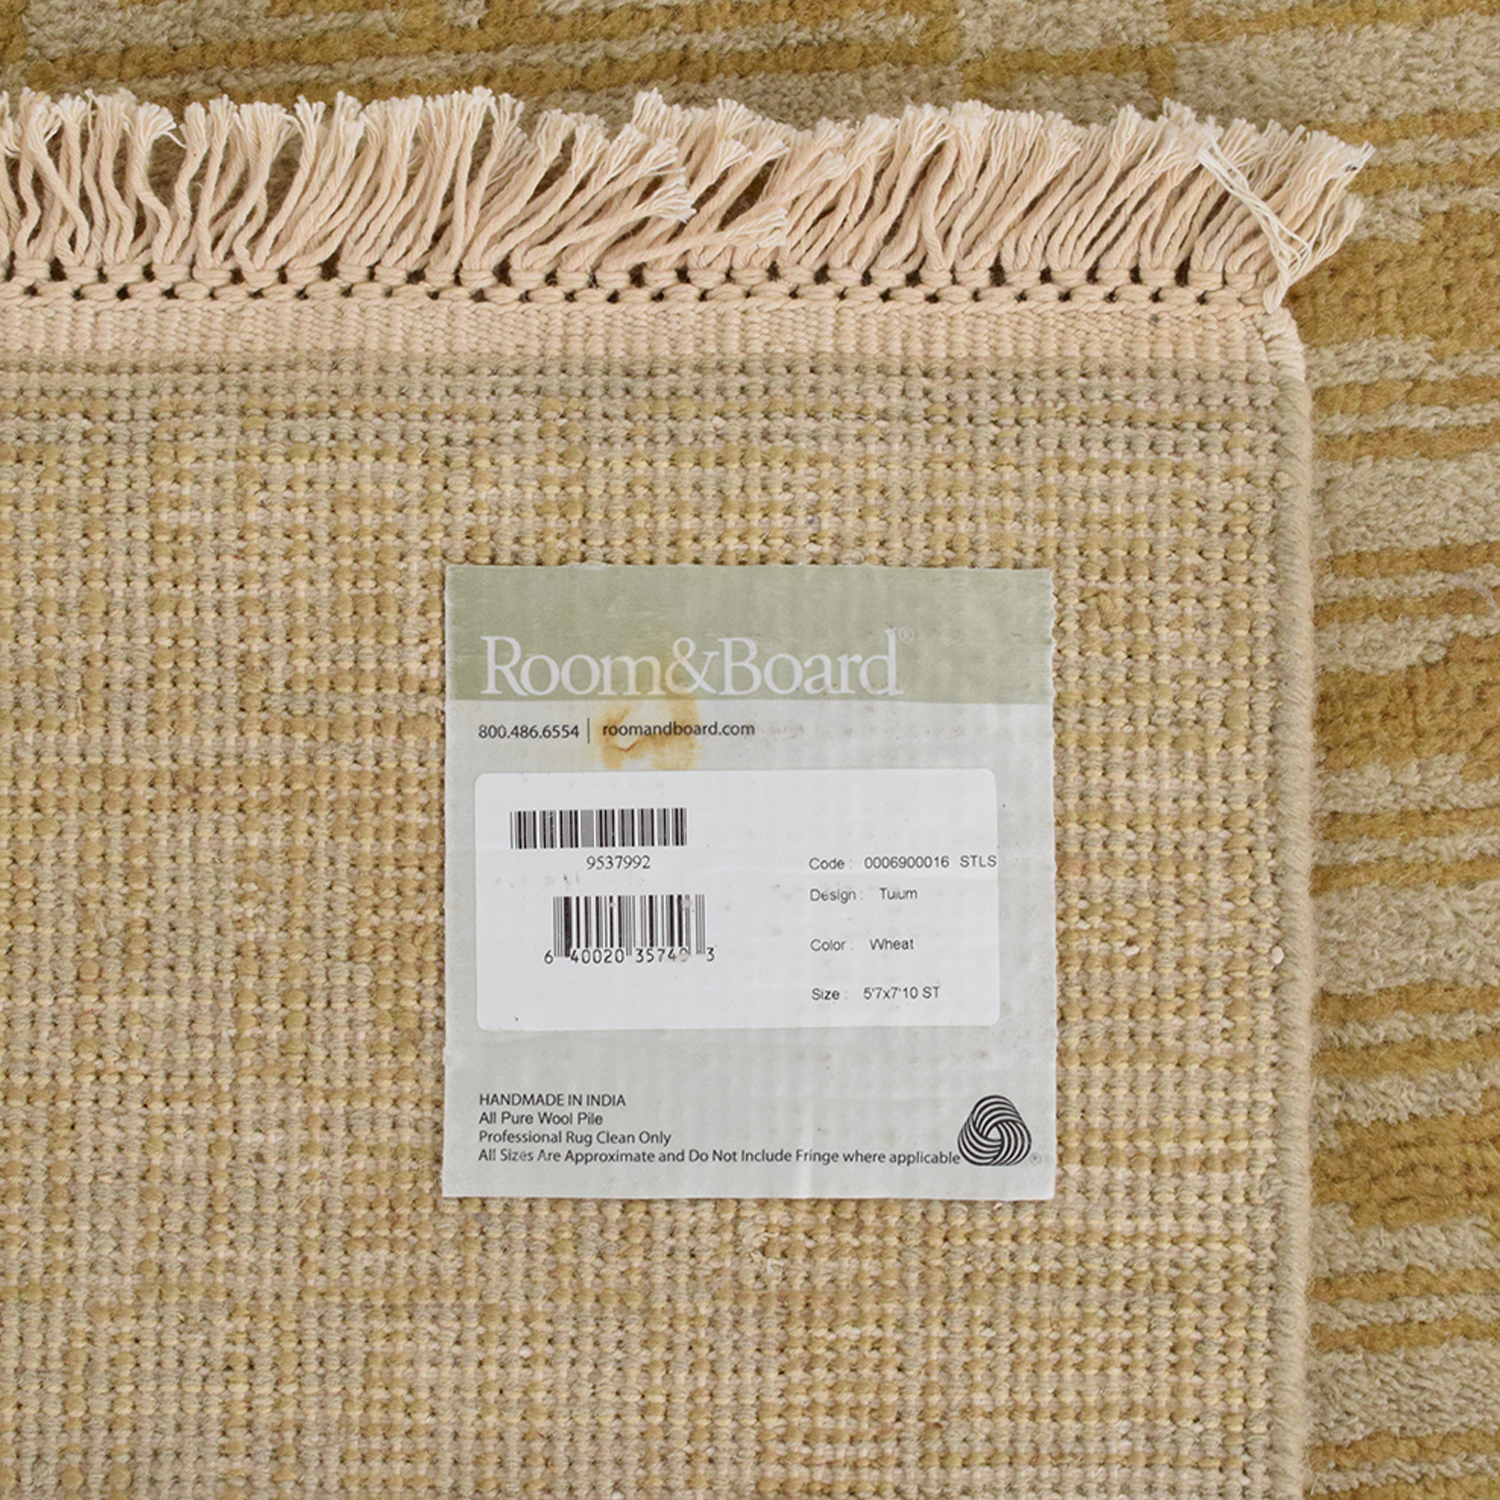 Room & Board Room & Board Tulum Hand Knotted Rug price